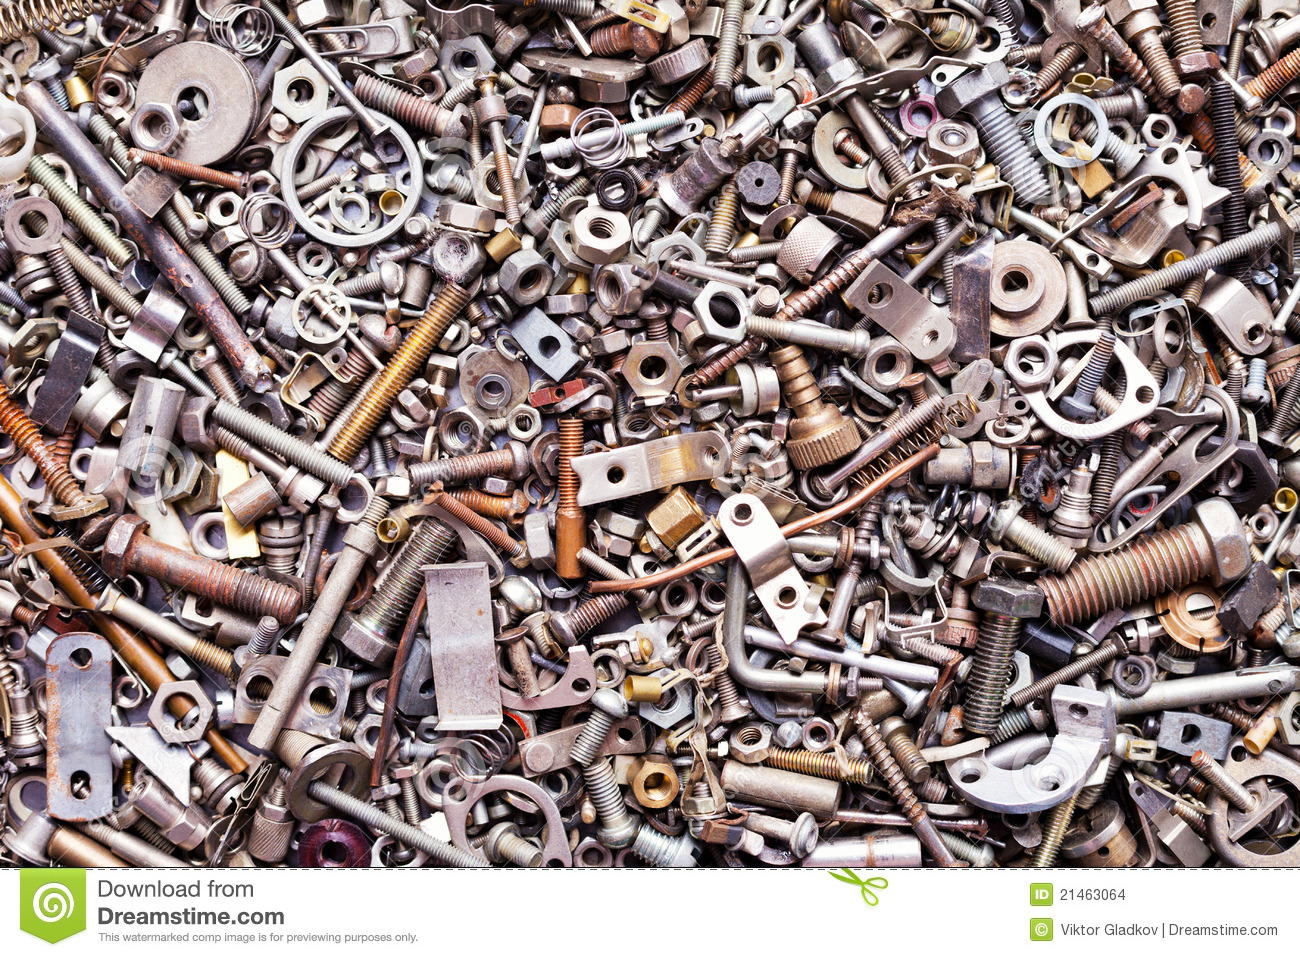 Copper Nuts And Bolts >> Assorted Nuts And Bolts Stock Images - Image: 21463064